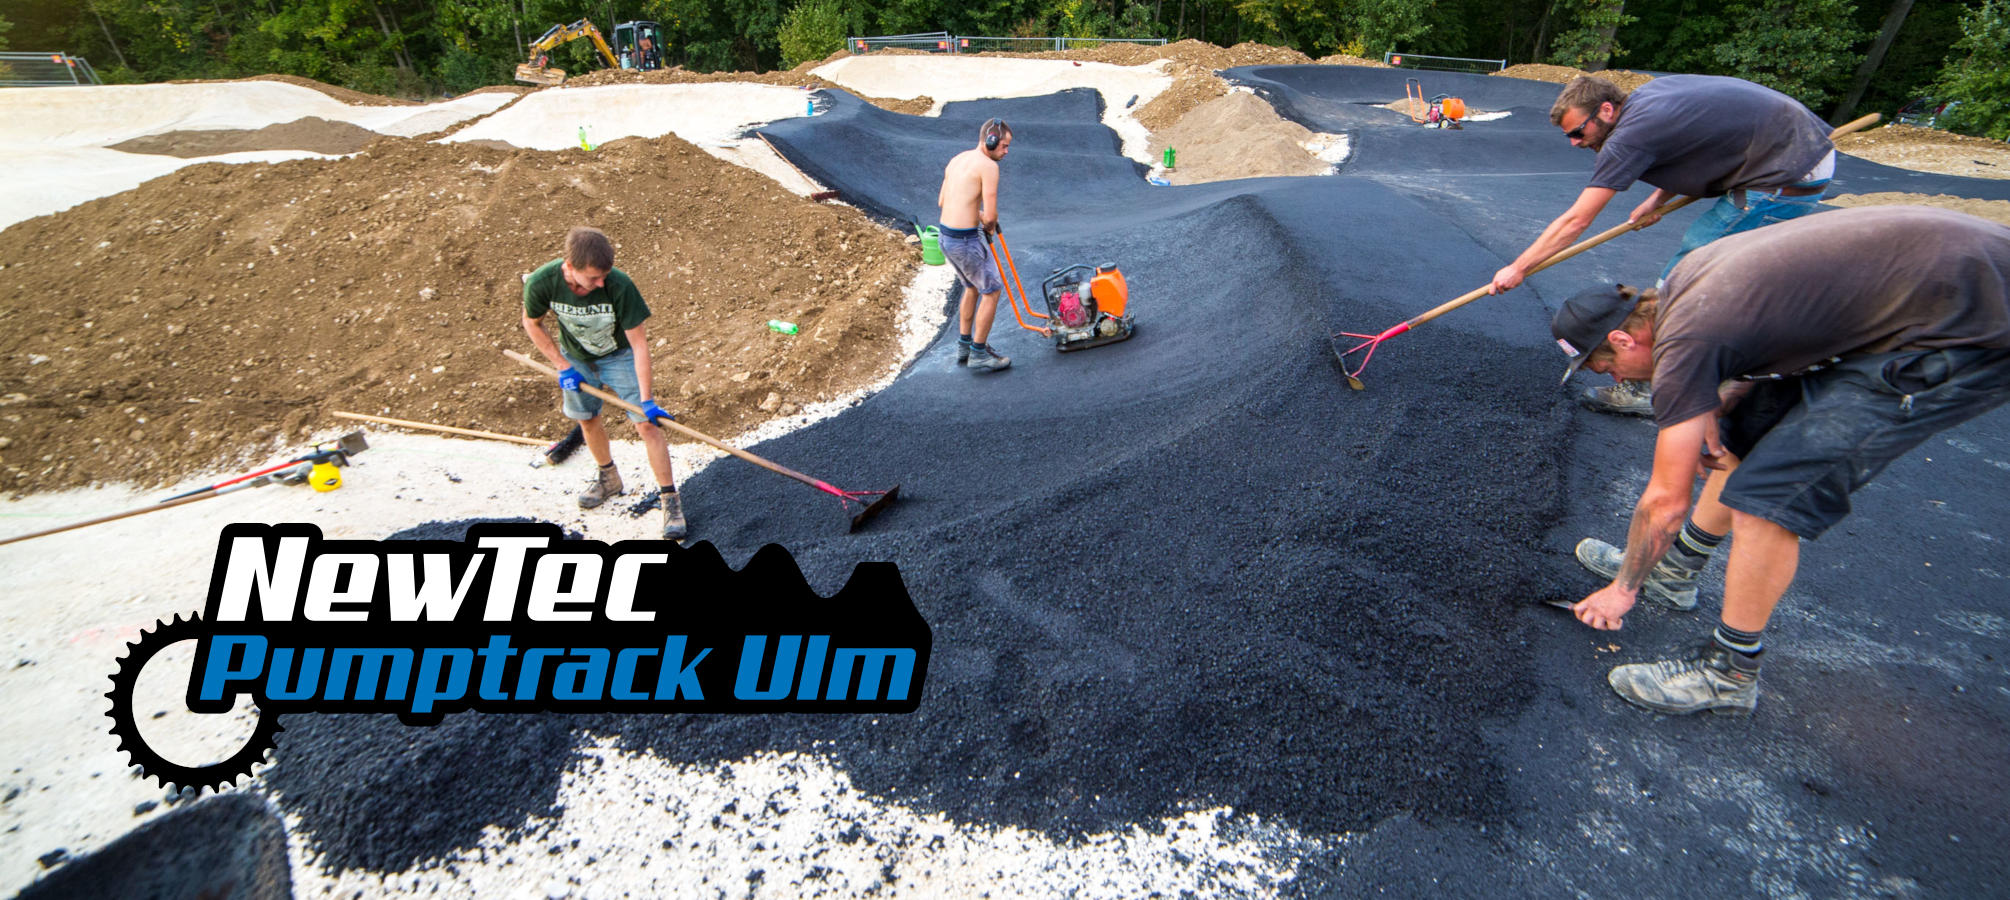 header_newtec_pumptrack_03